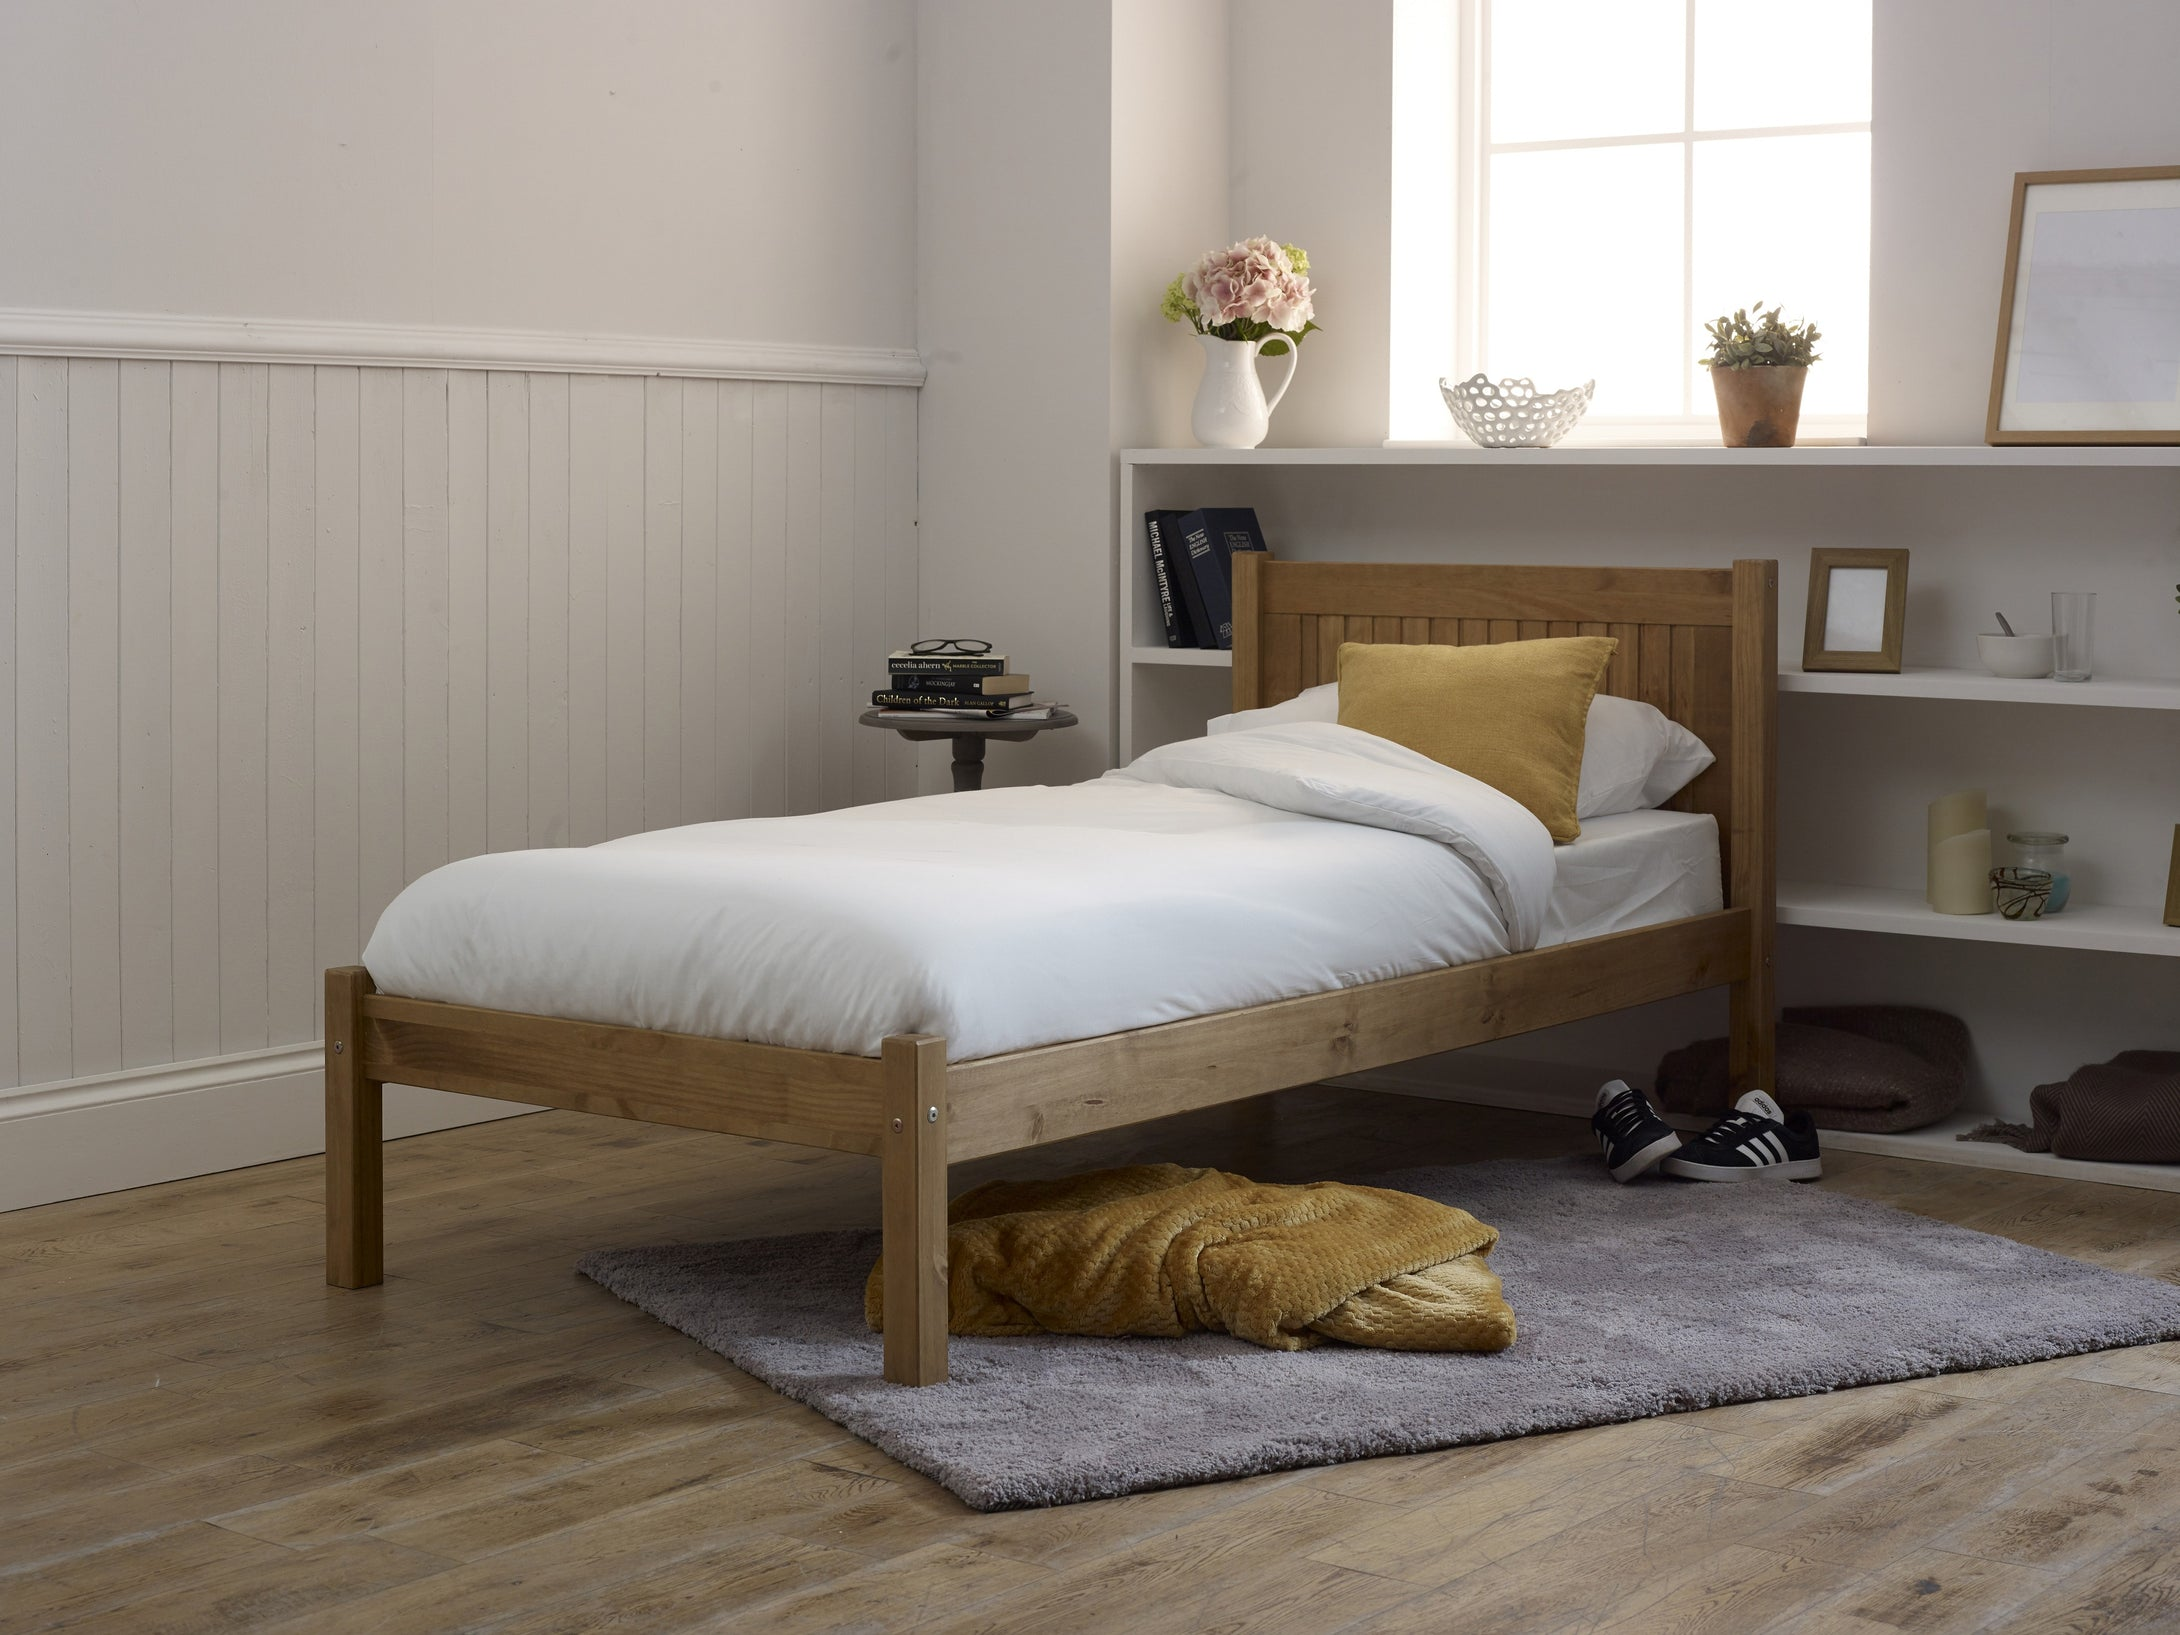 Single wooden bed | Pine wooden single bed frame